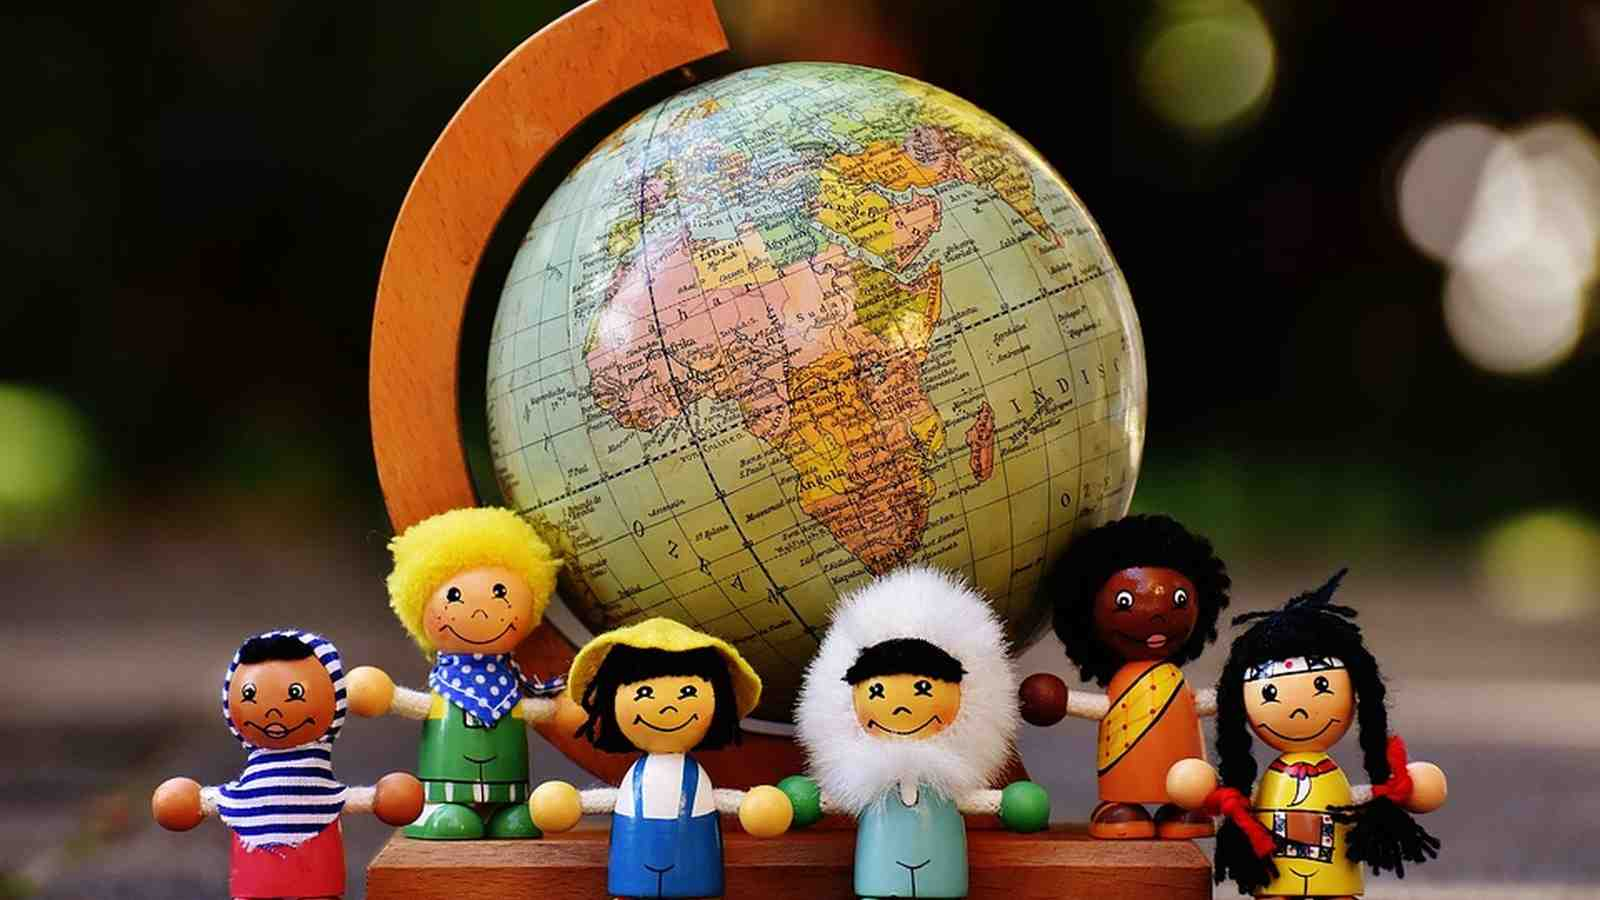 Figurines from around the world standing in front of a globe.